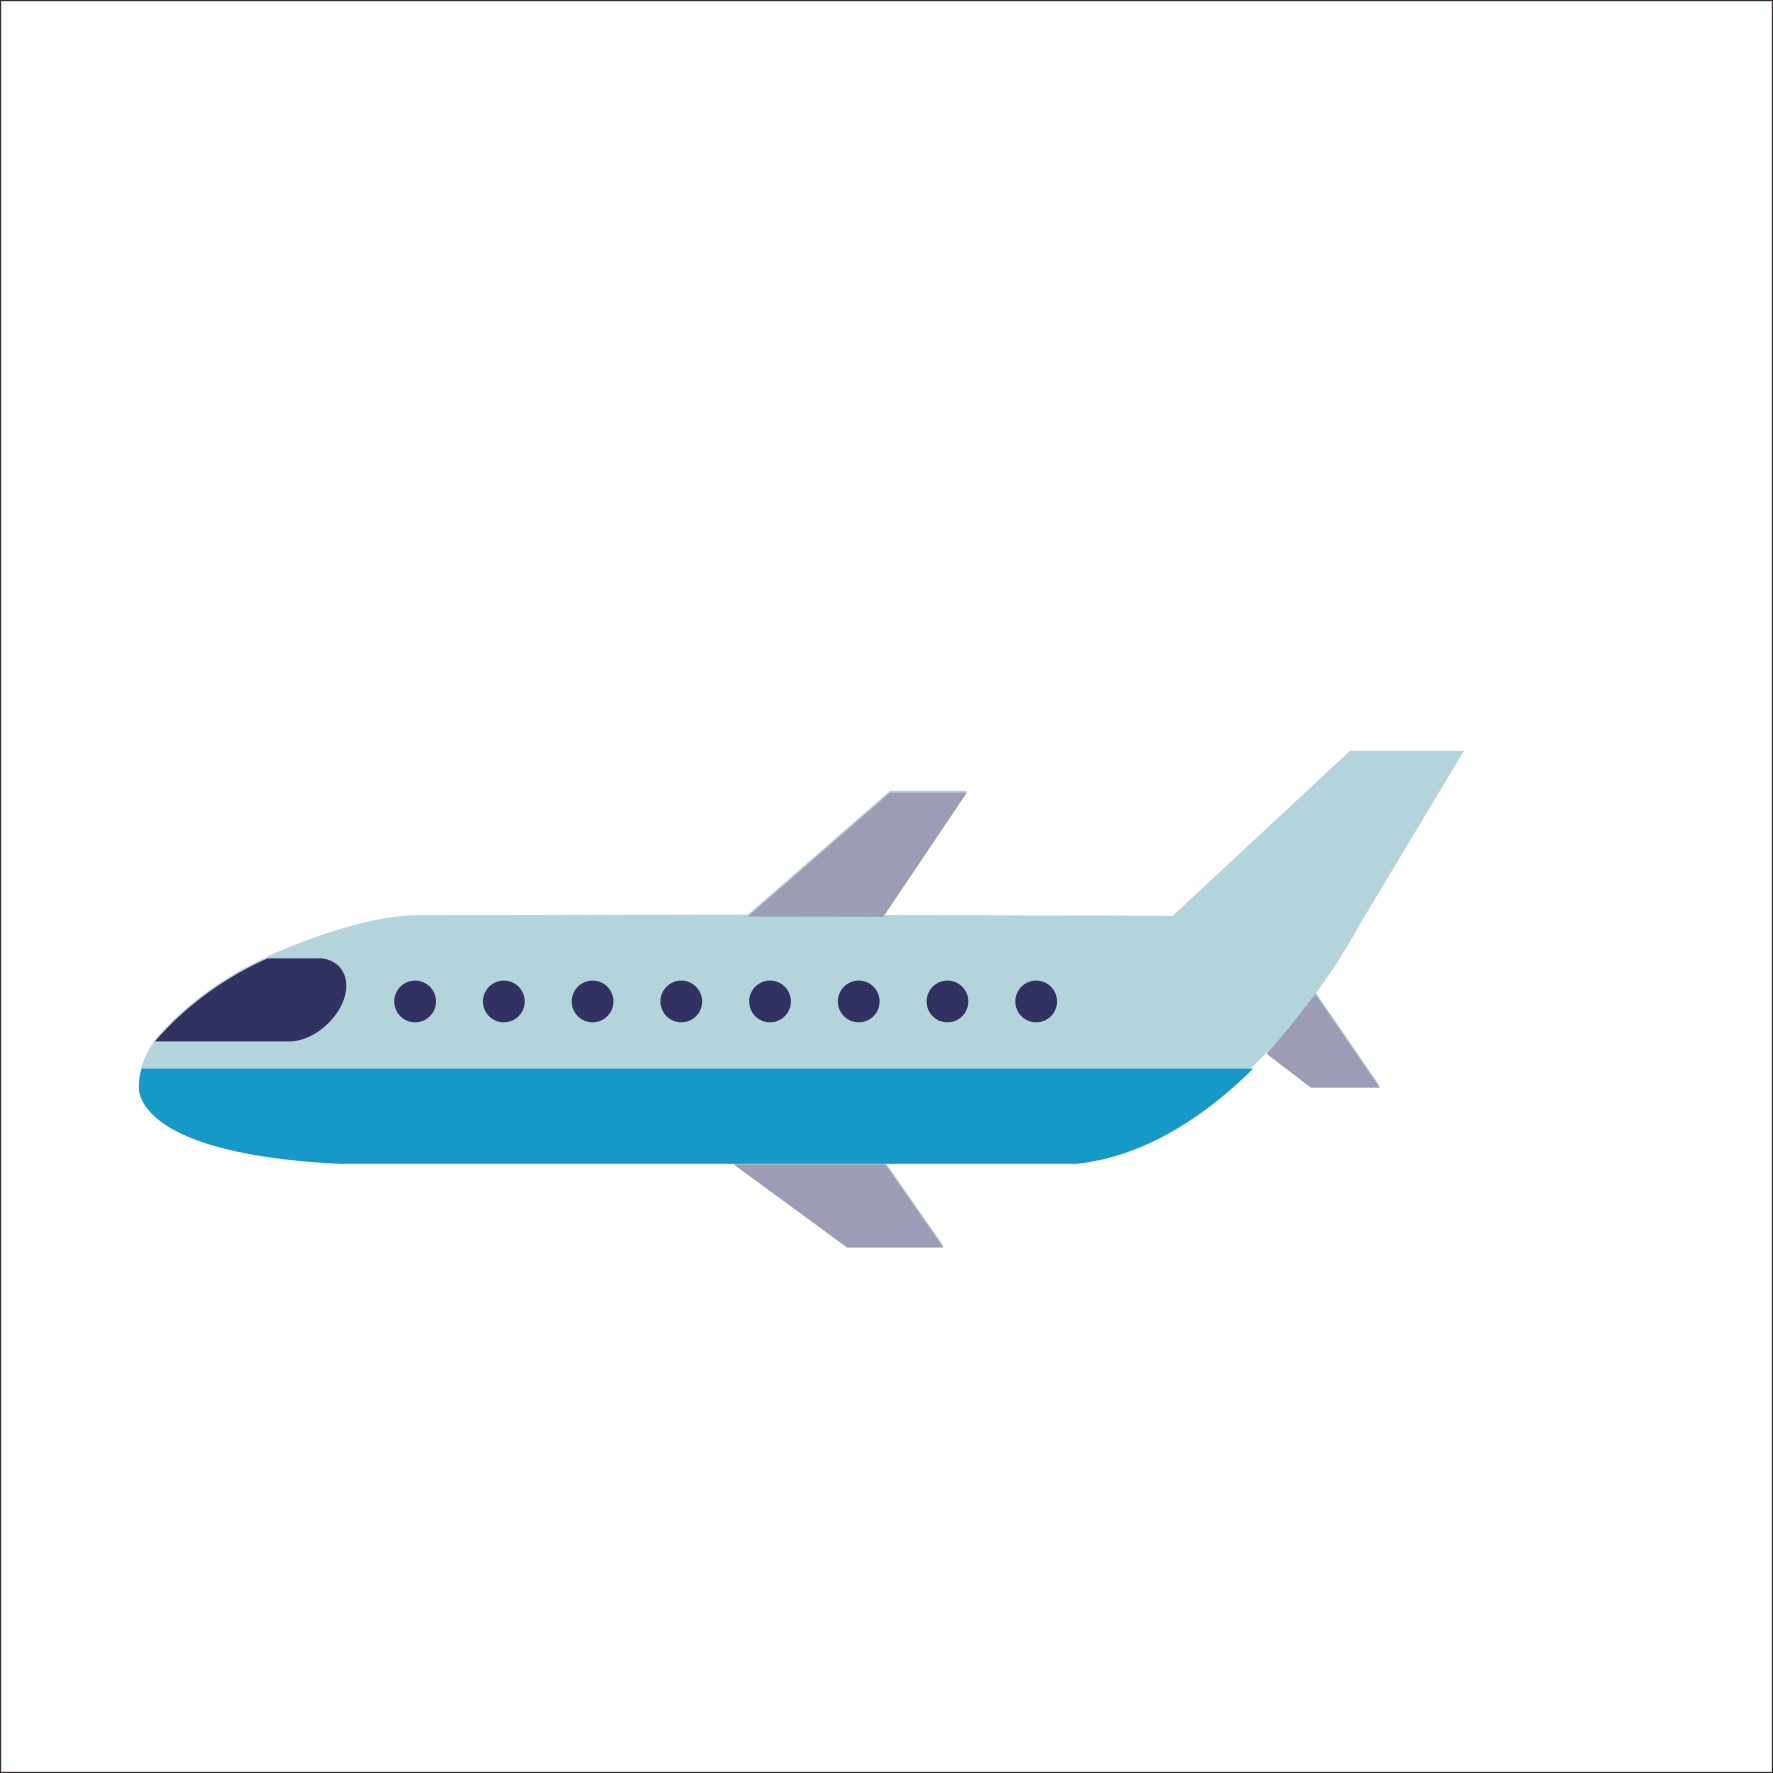 Download Hd Aircraft Vector Blue Airplane Cartoon Airplane Png Transparent Png Image Nicepng Com